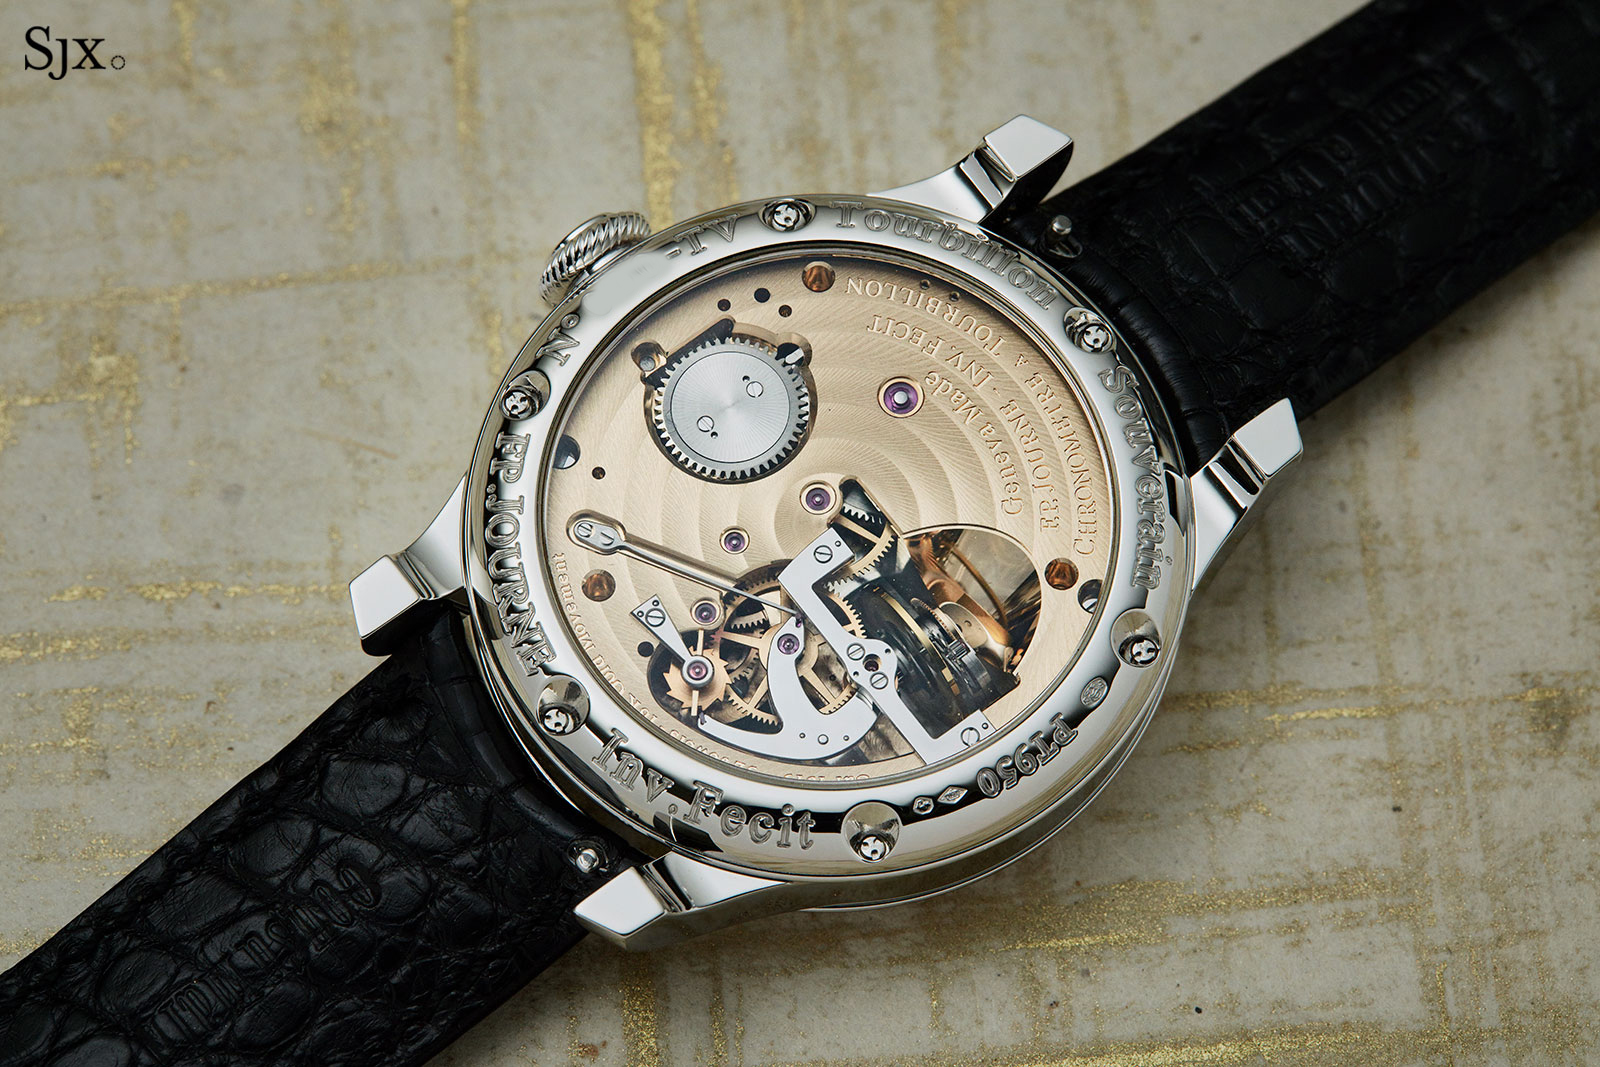 FP Journe Tourbillon Souverain Vertical Pt 7-1